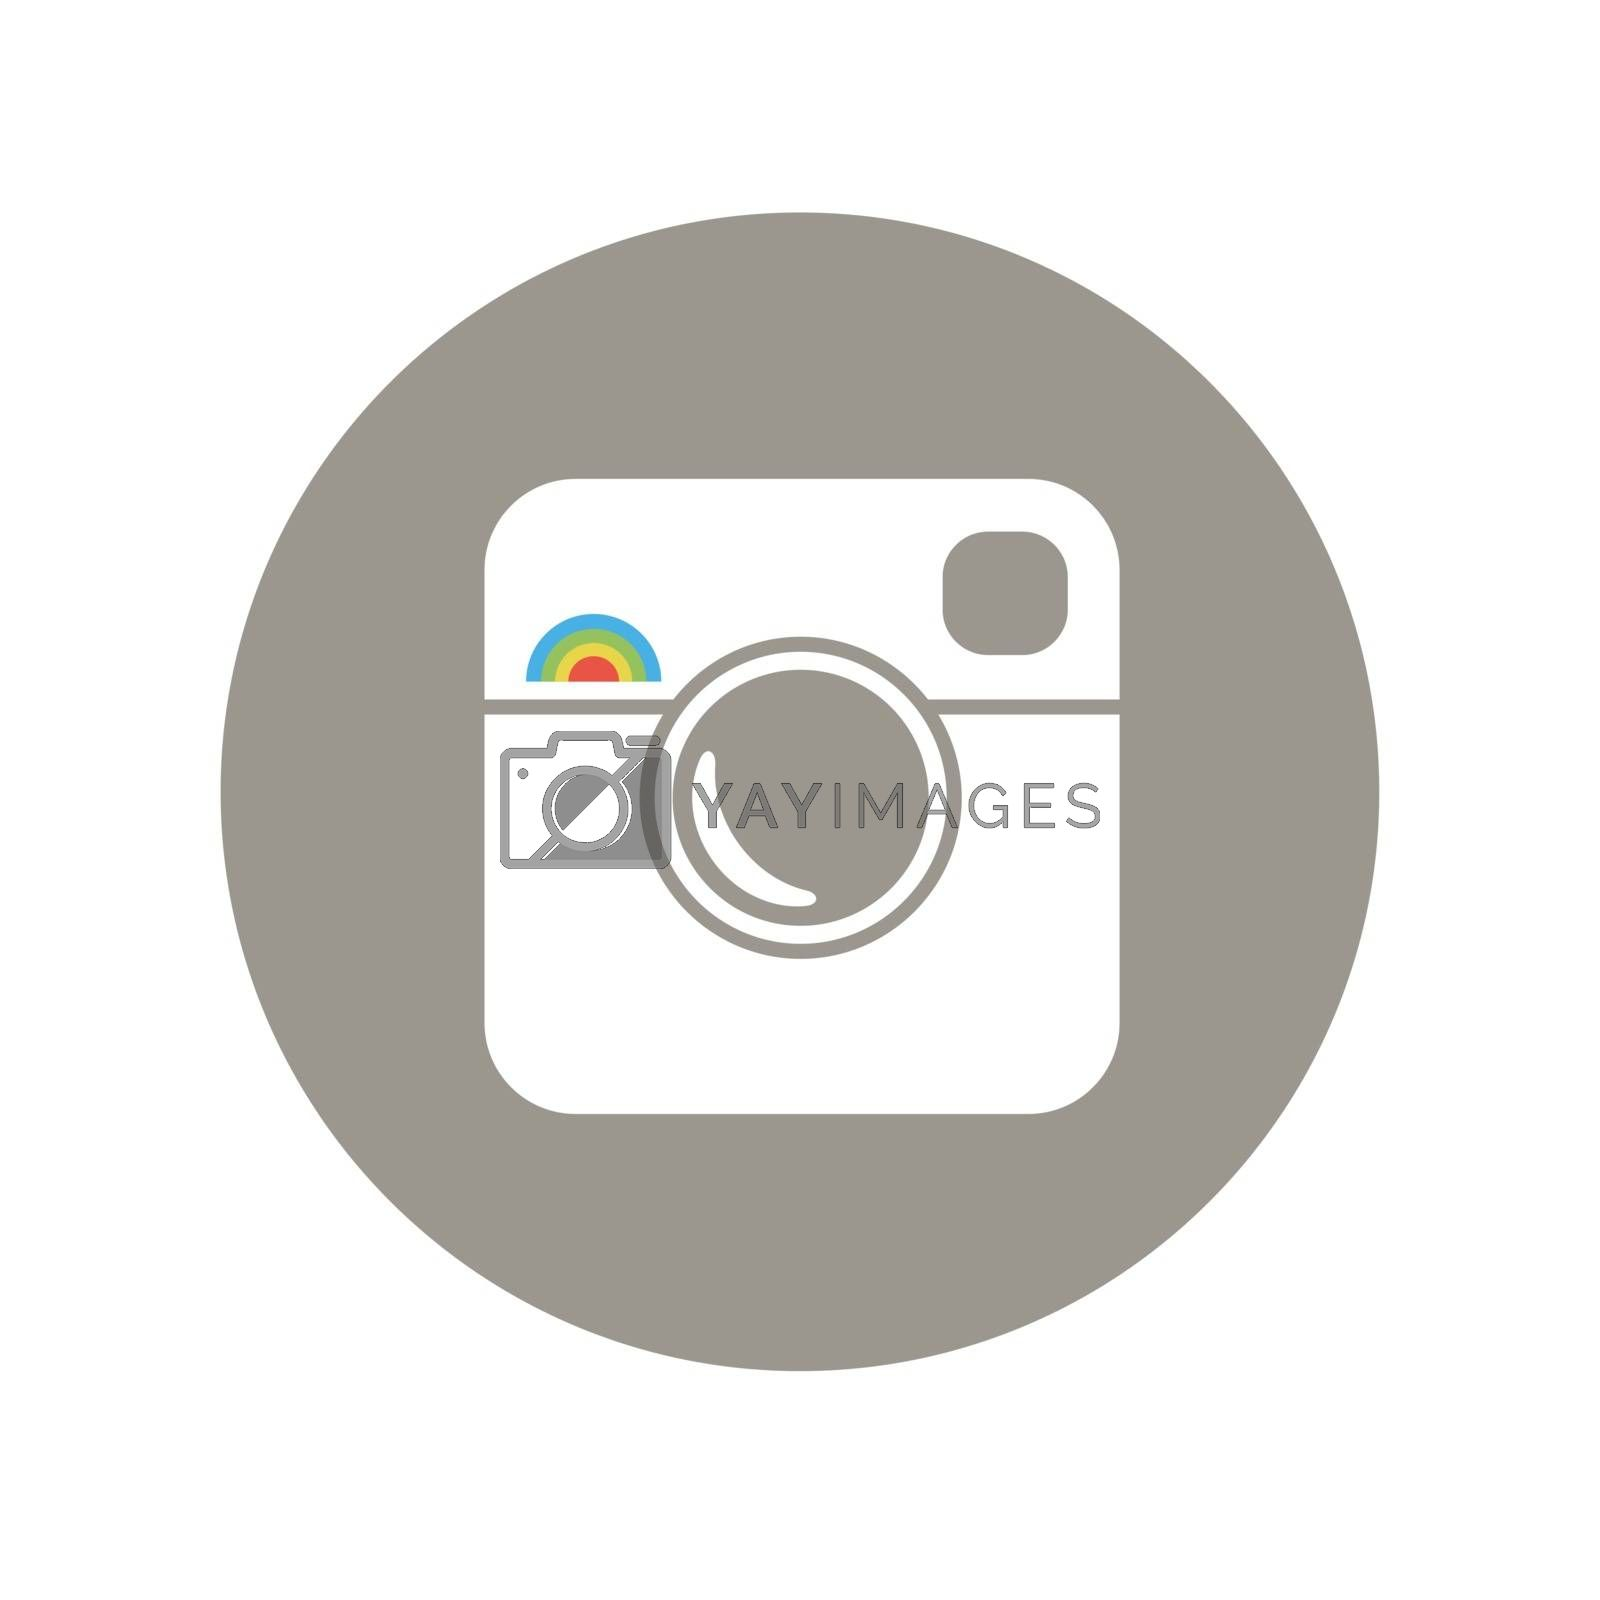 Royalty free image of Hipster Photo Icon with Rainbow Sign by pashabo